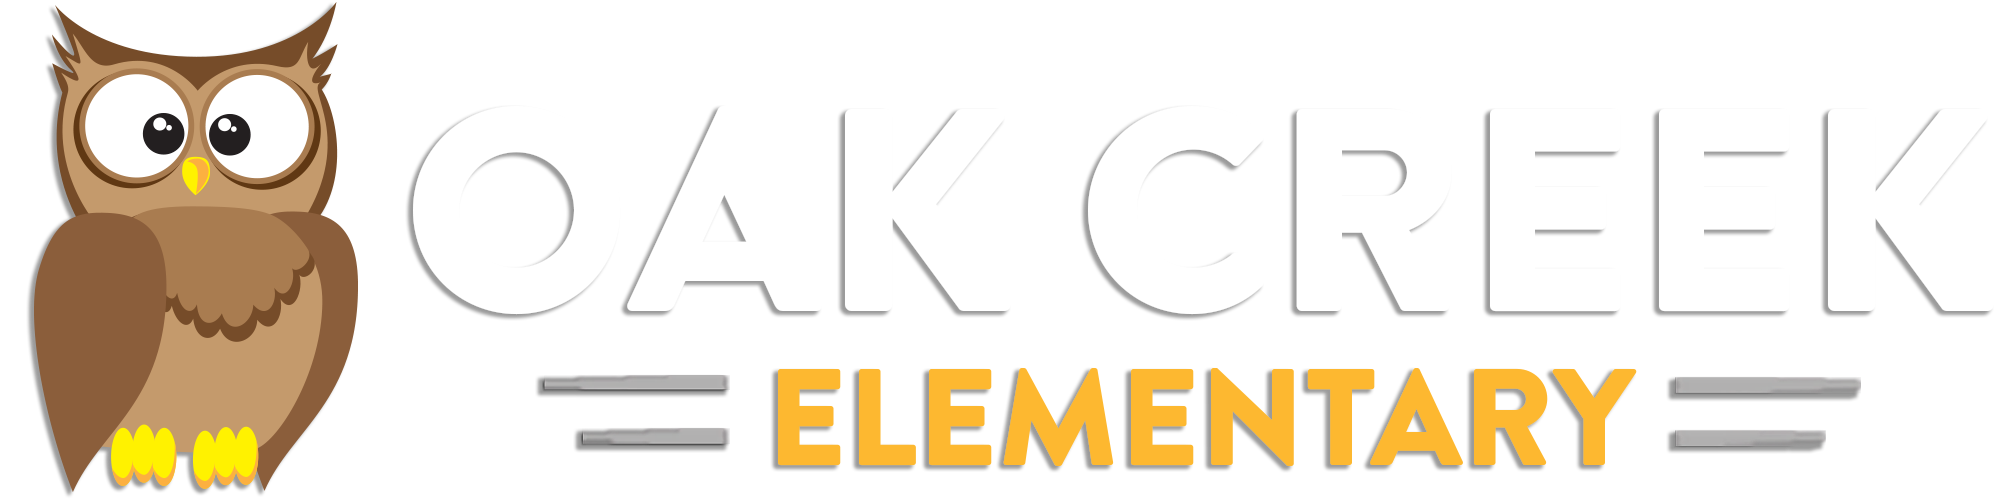 Oak Creek Elementary - Irvine Unified School District